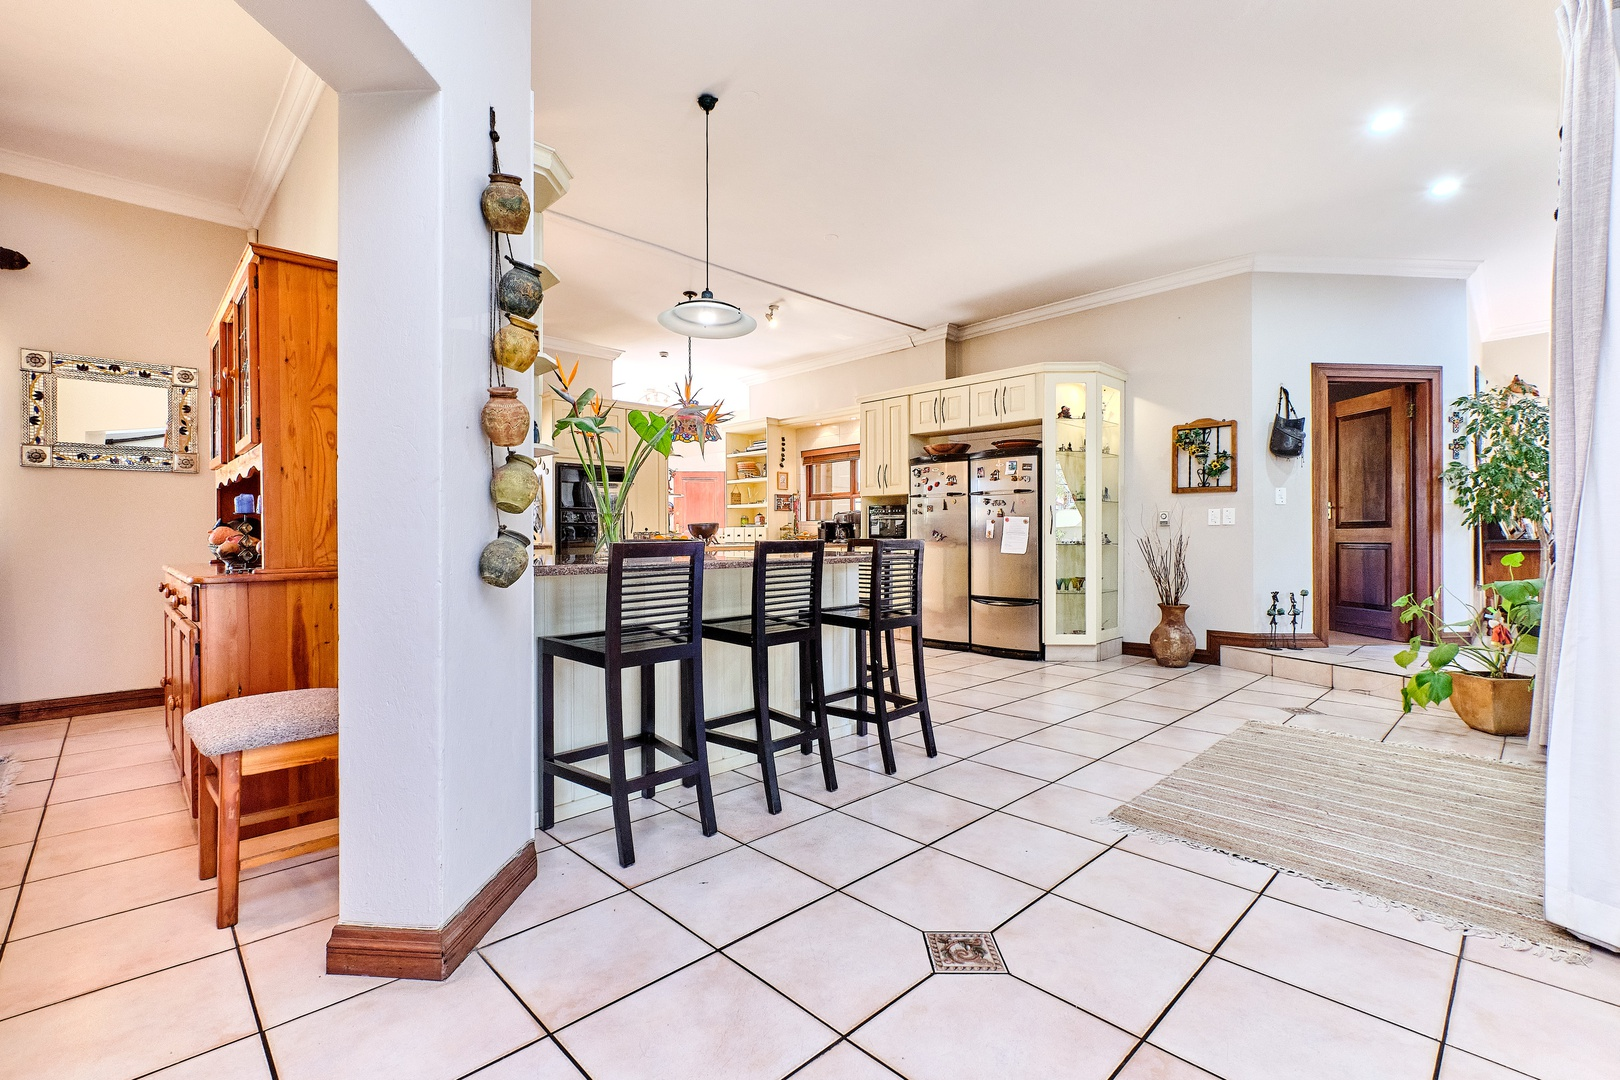 House in Dainfern Golf Estate - Kitchen leading to diningroom